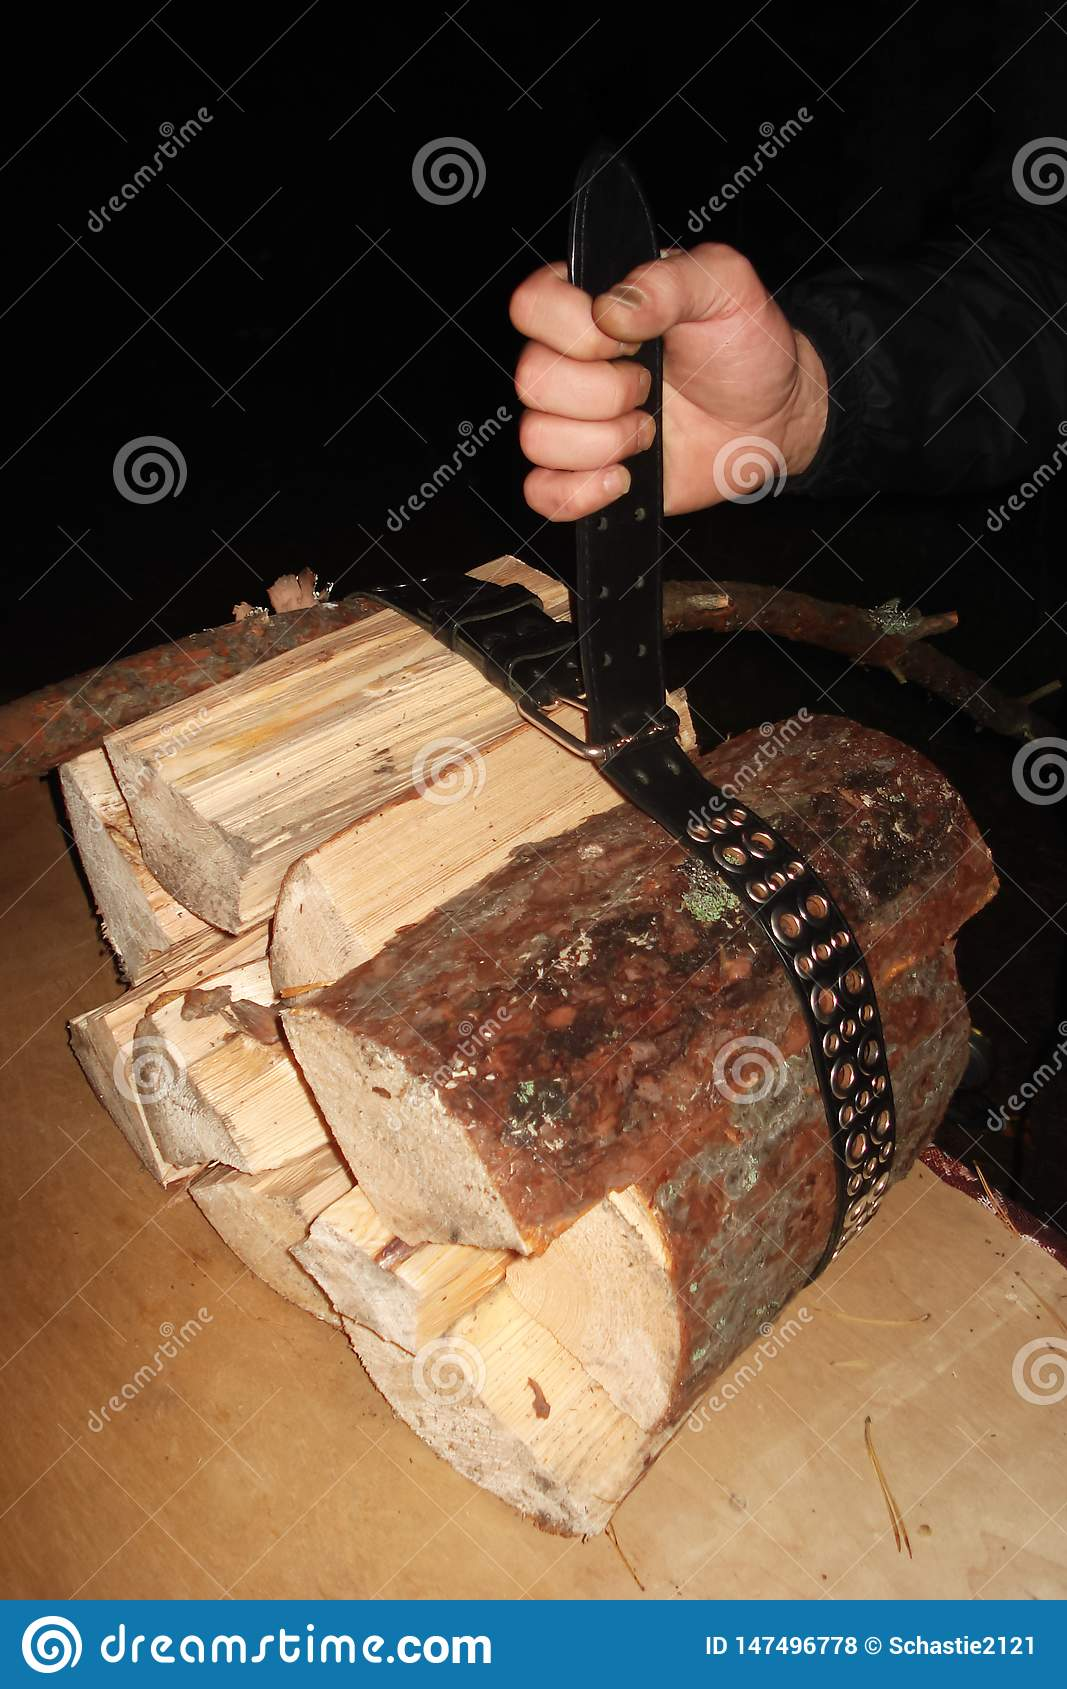 The man pulled the leather belt over the logs and holds them in his hand.